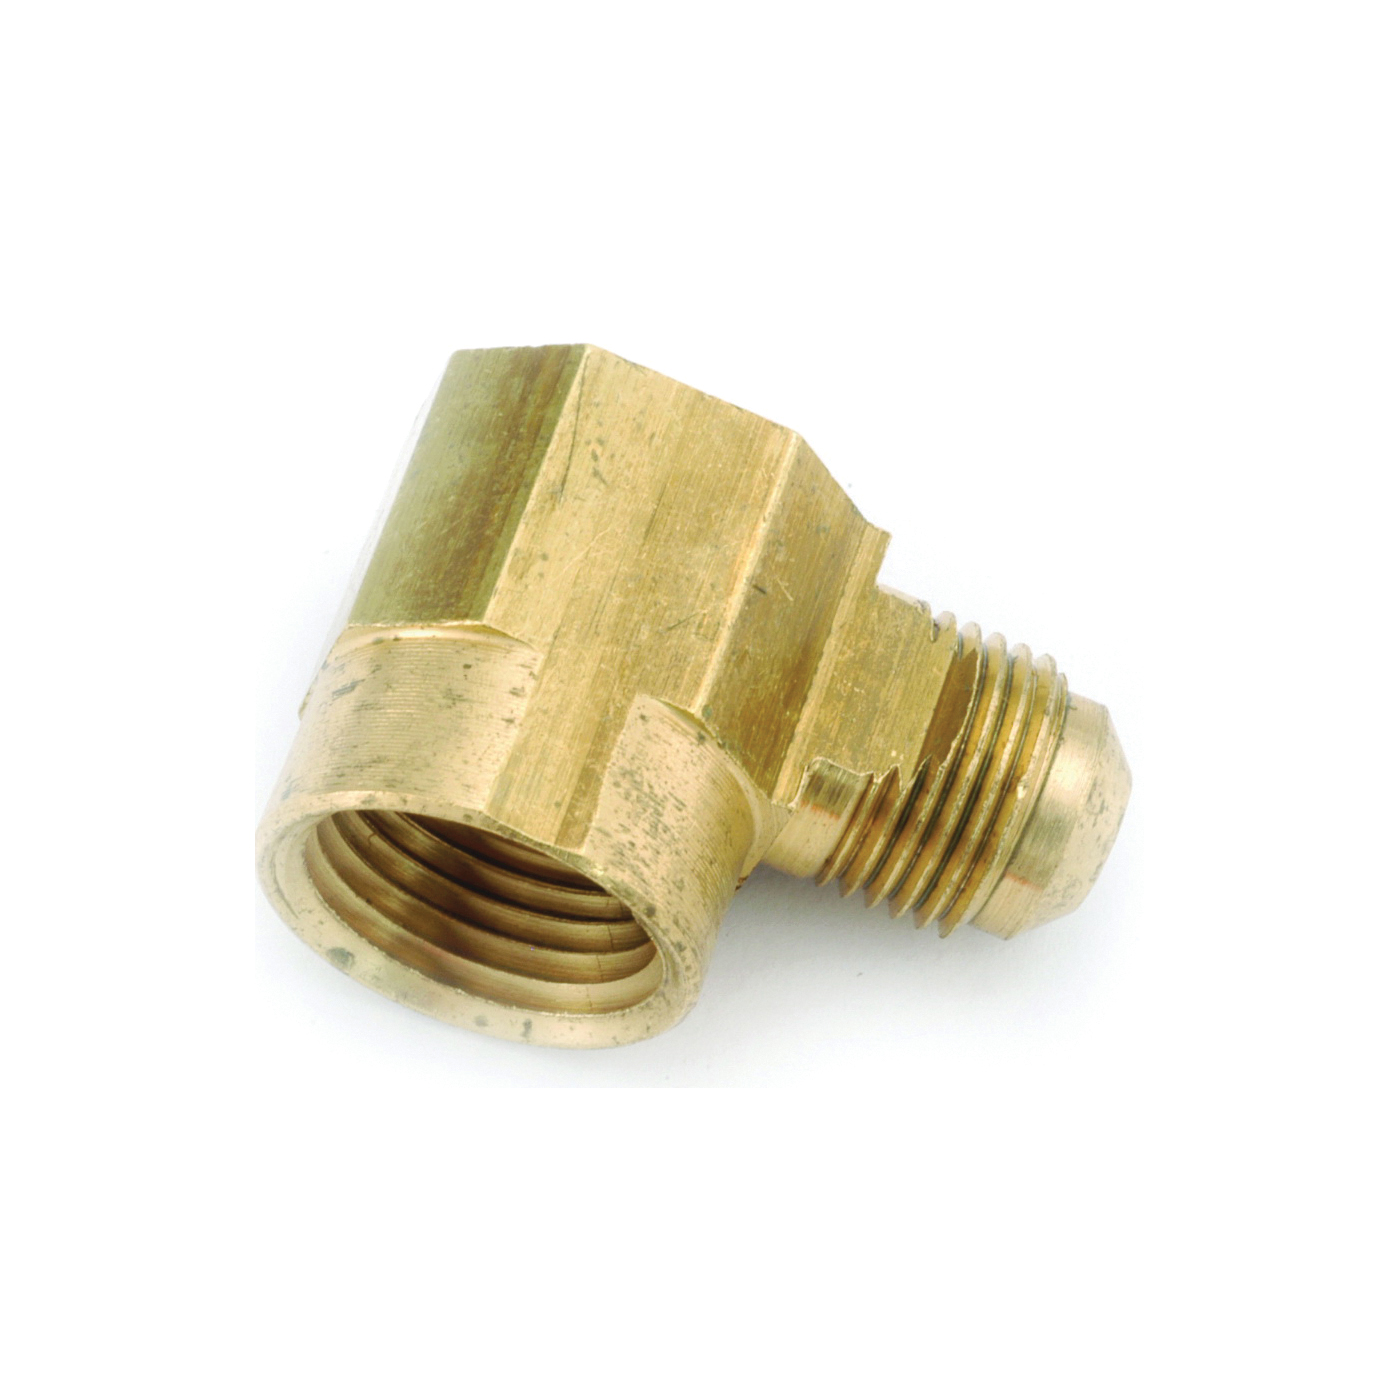 Picture of Anderson Metals 754050-0806 Tube Elbow, 1/2 x 3/8 in, 90 deg Angle, Lead-Free Brass, 750 psi Pressure